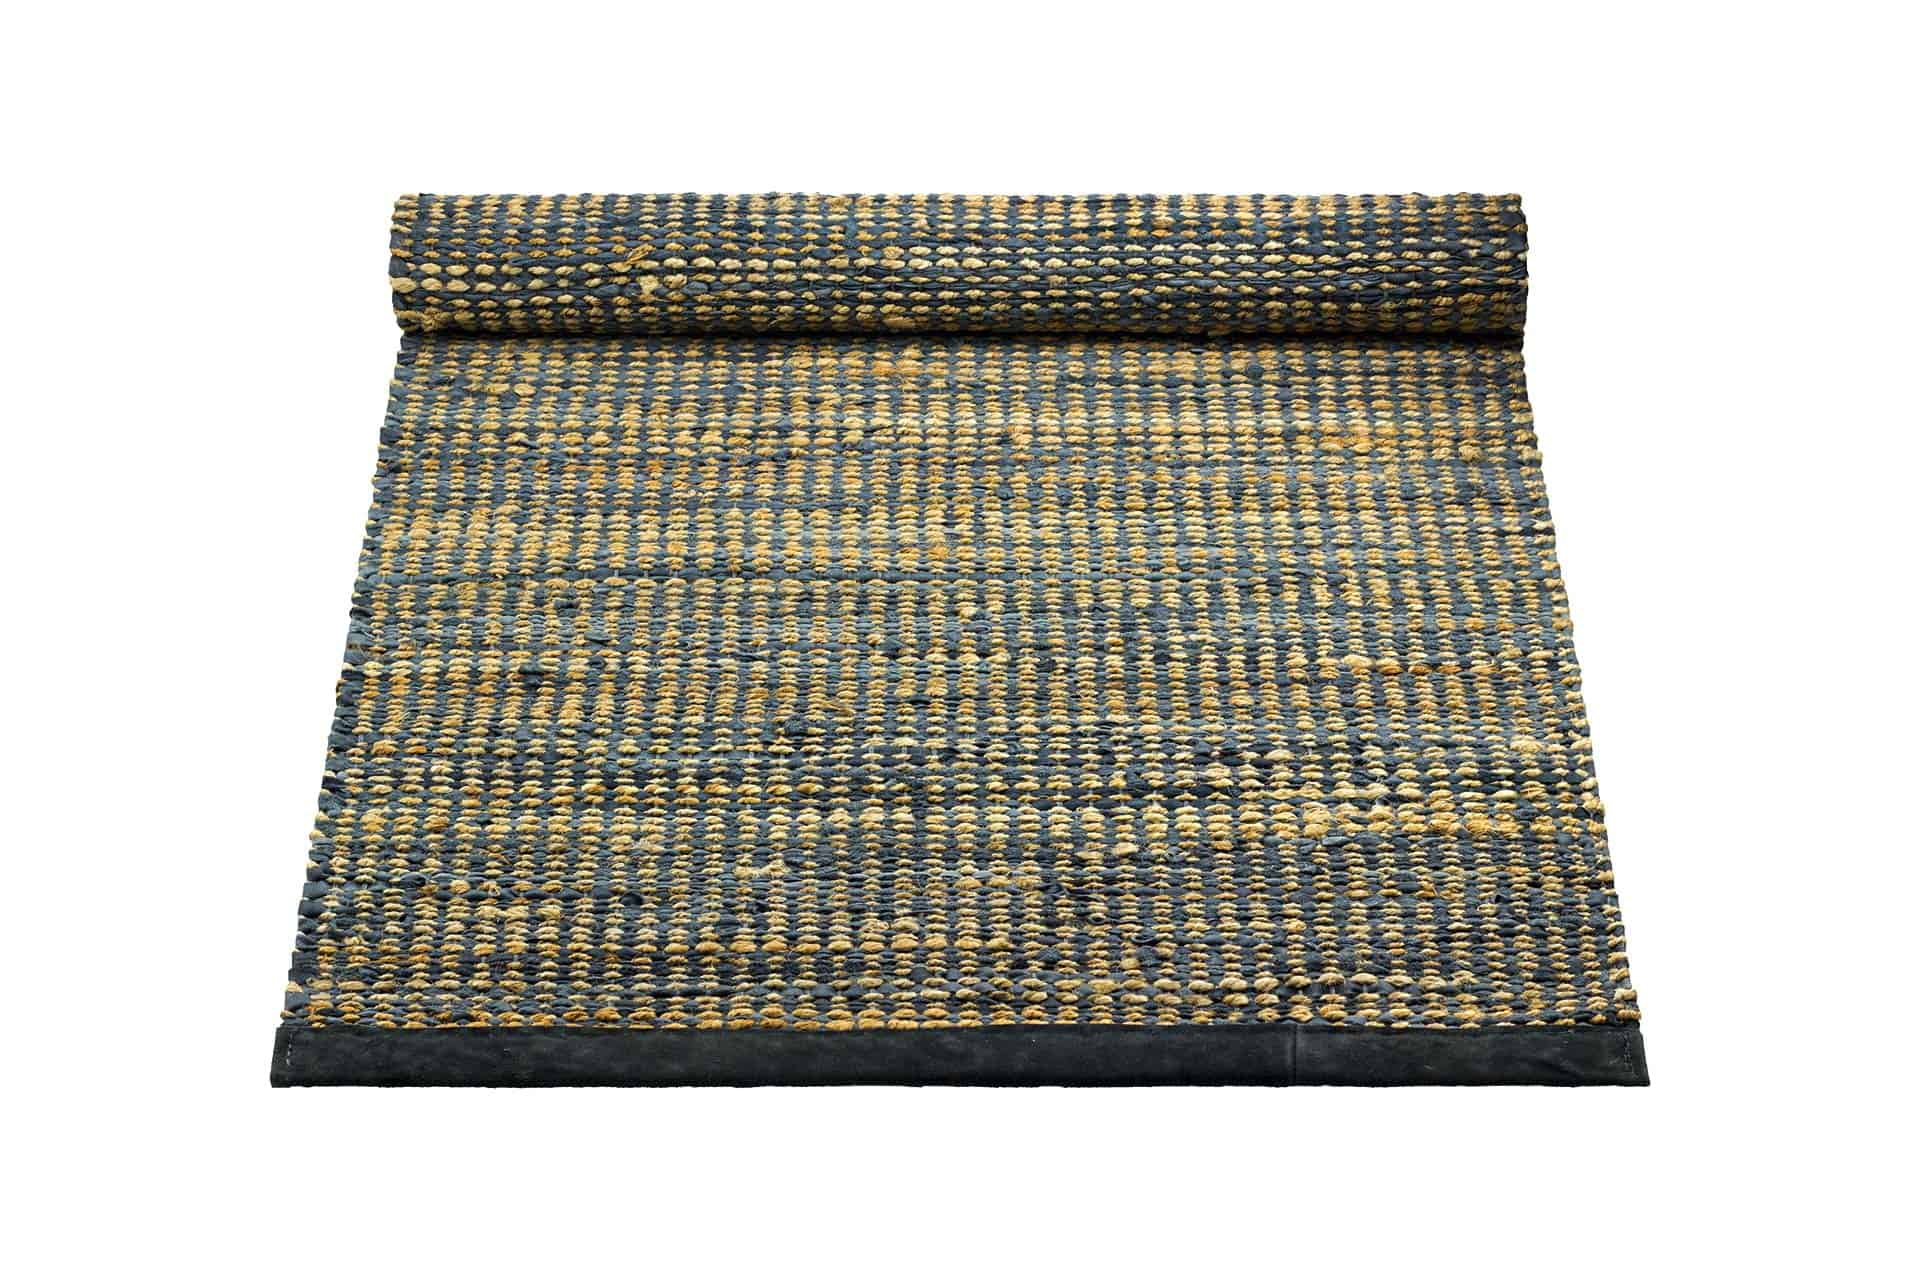 Tapis graphite 100% jute-cuir recyclé by Rugsolid-PARIDEO design contemporain durable